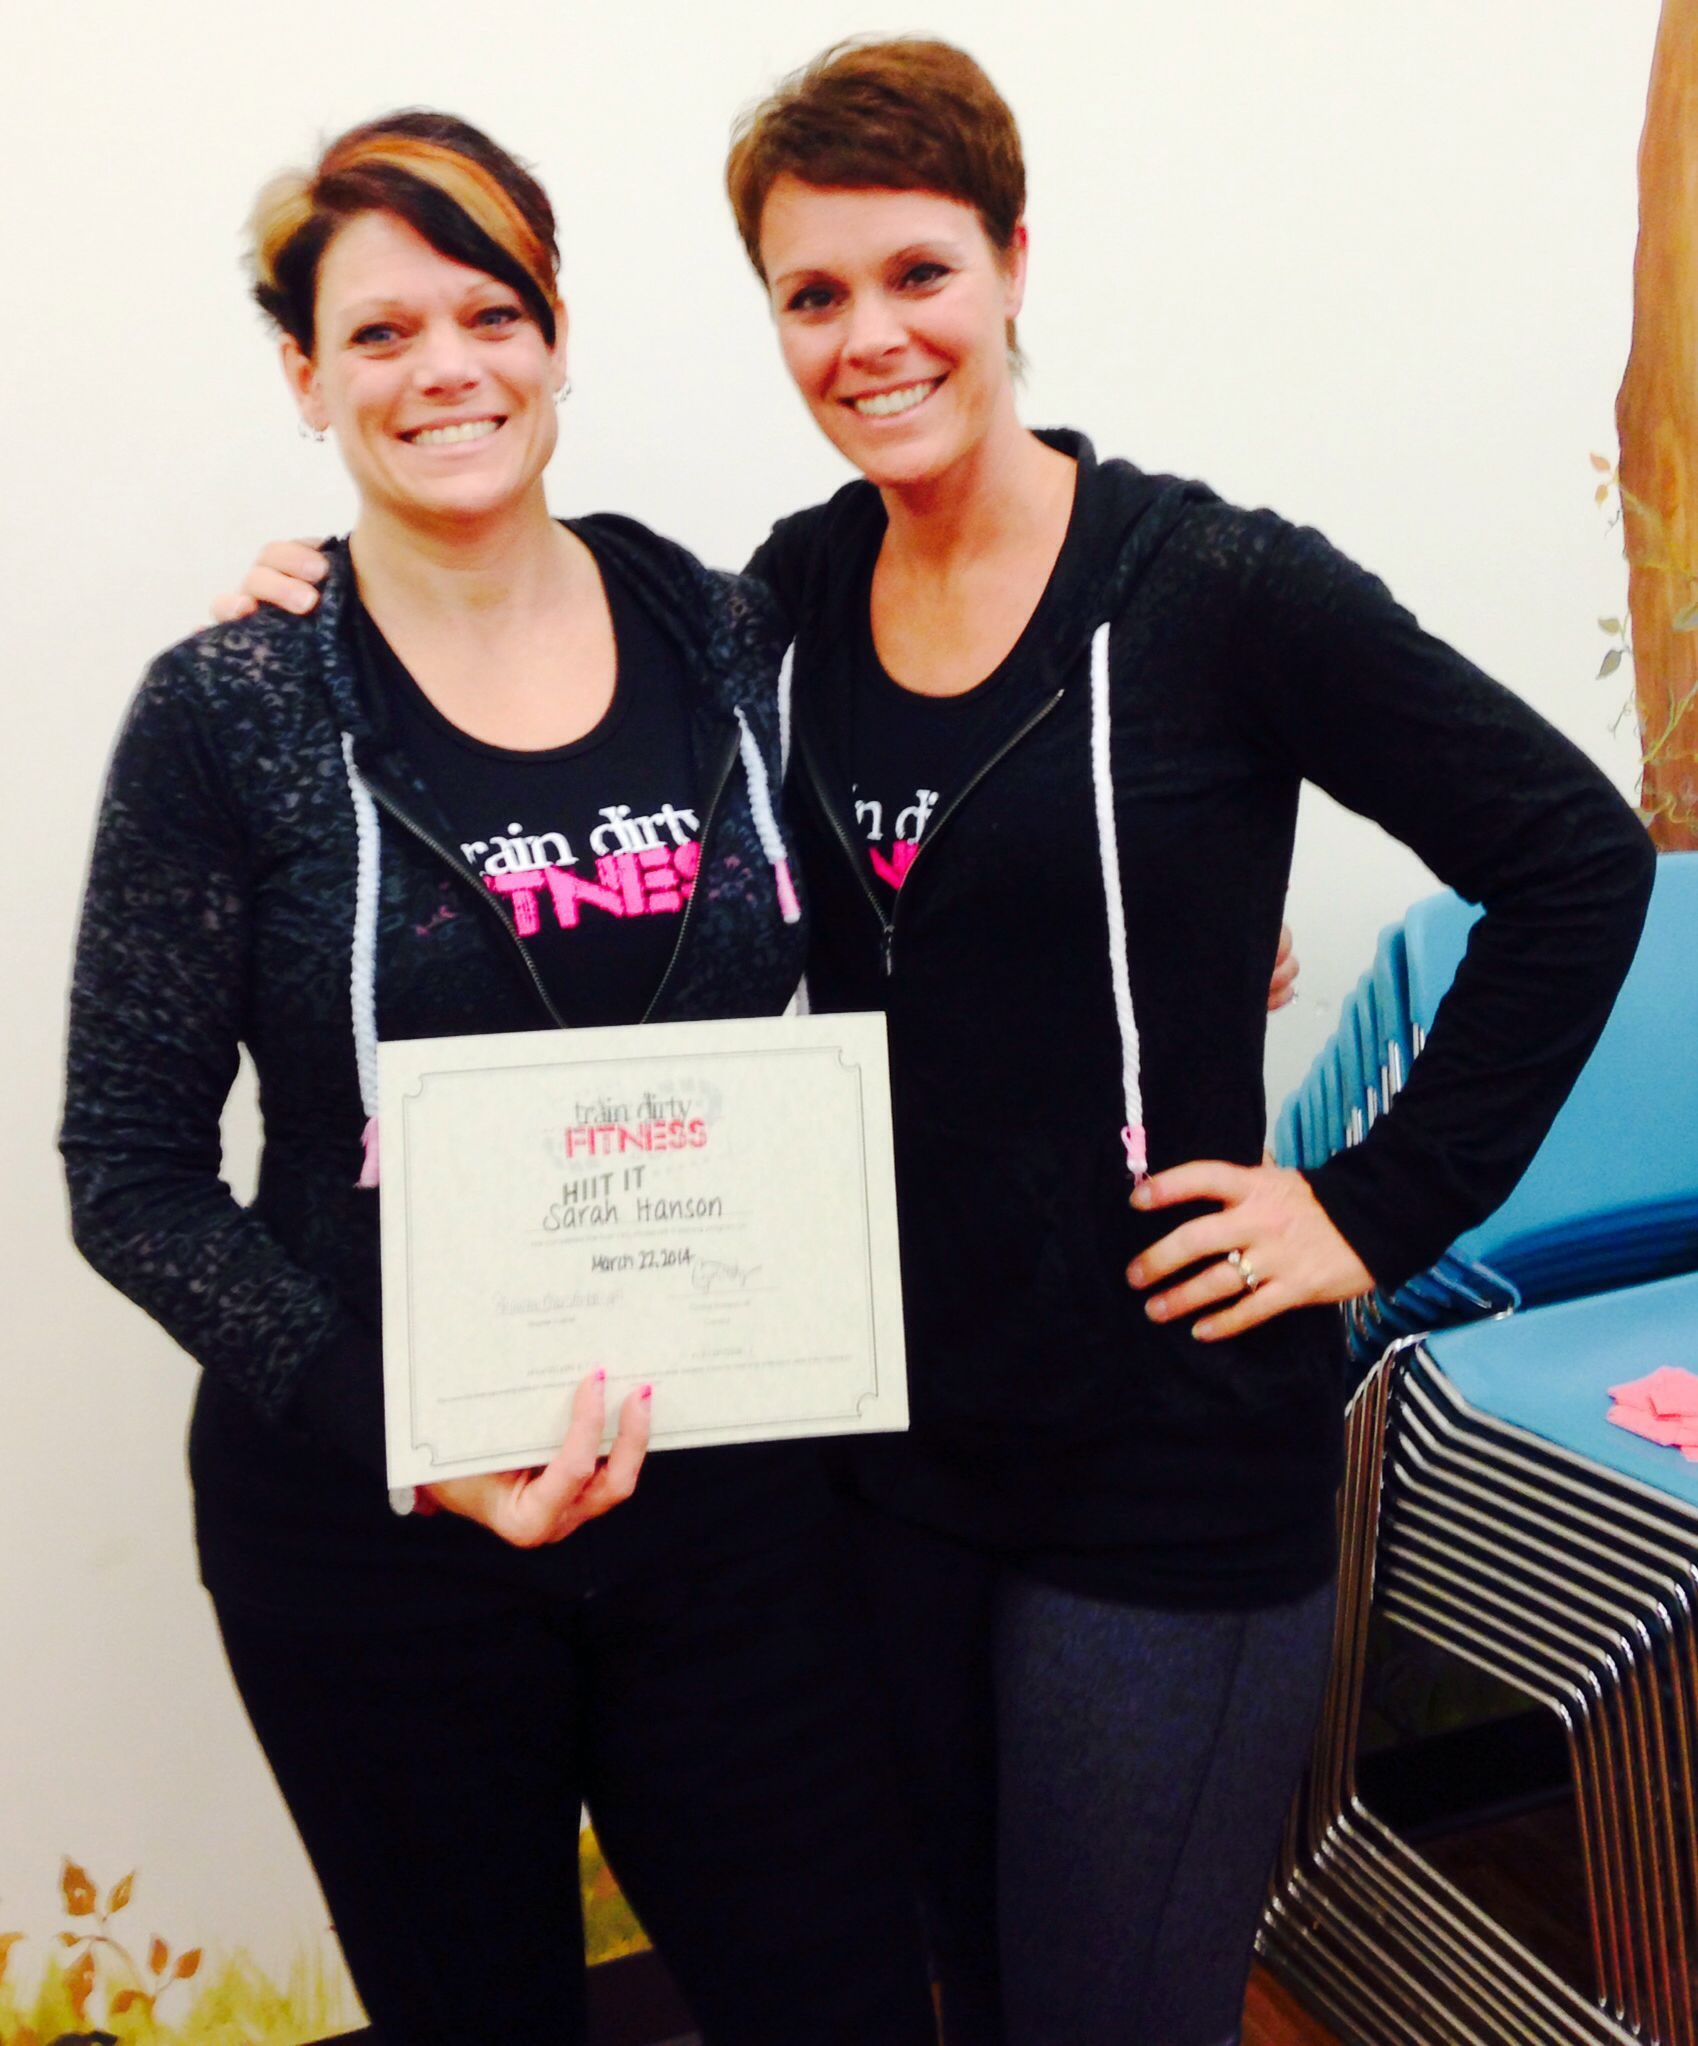 Tdf Hiit It Certification 3 22 2014 Shawna My Awesome Tdf Sister